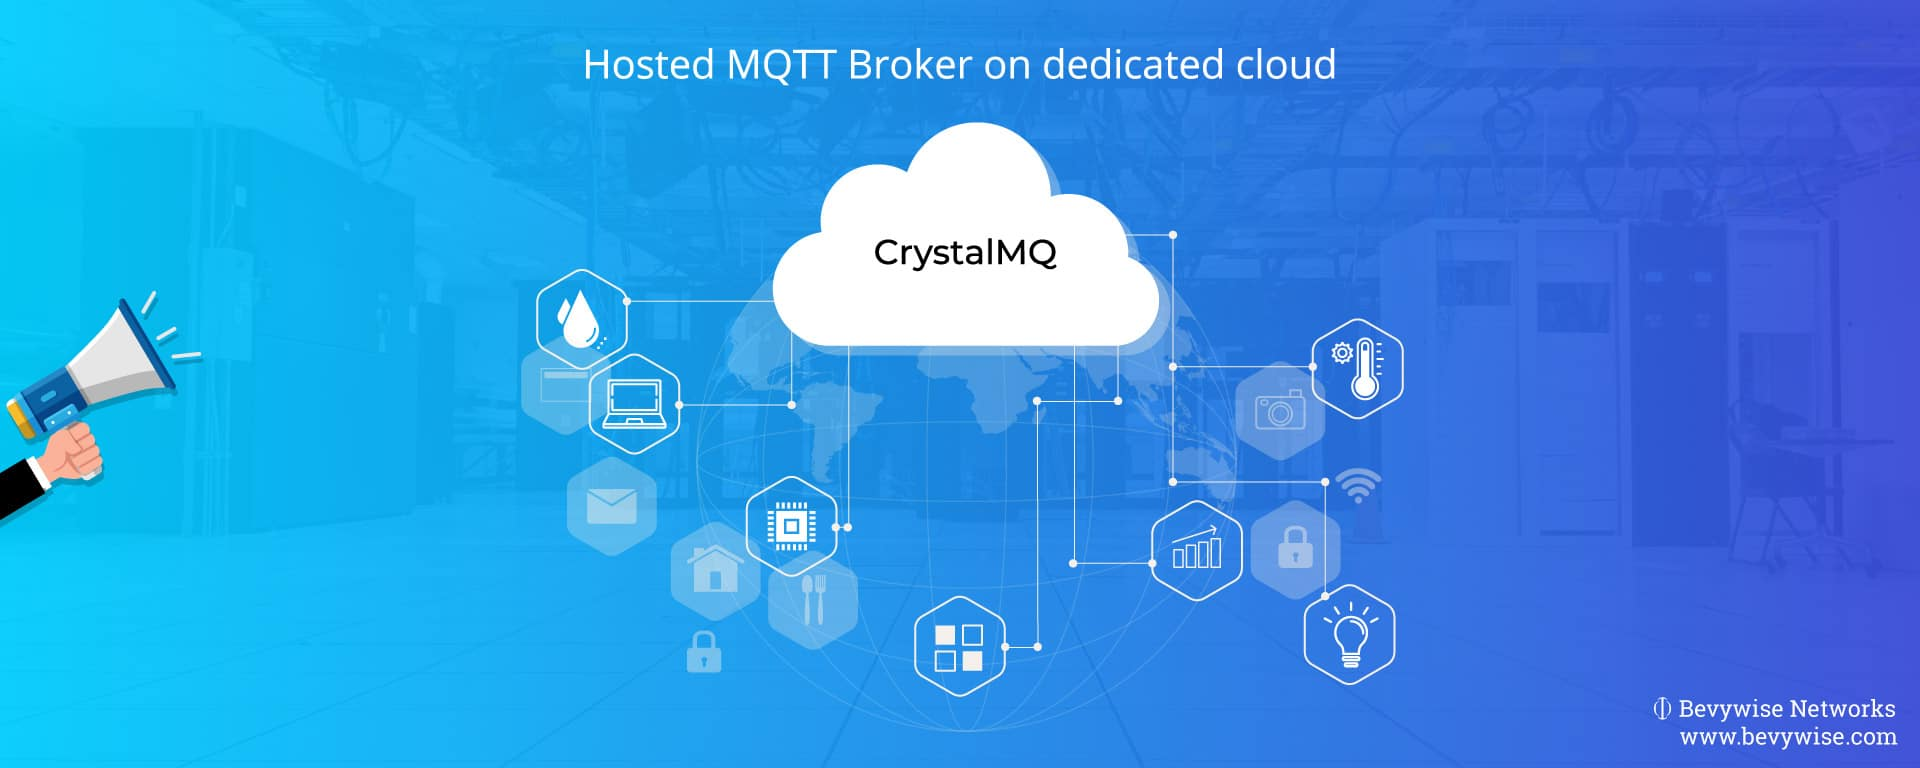 CrystalMQ - Hosted MQTT Broker